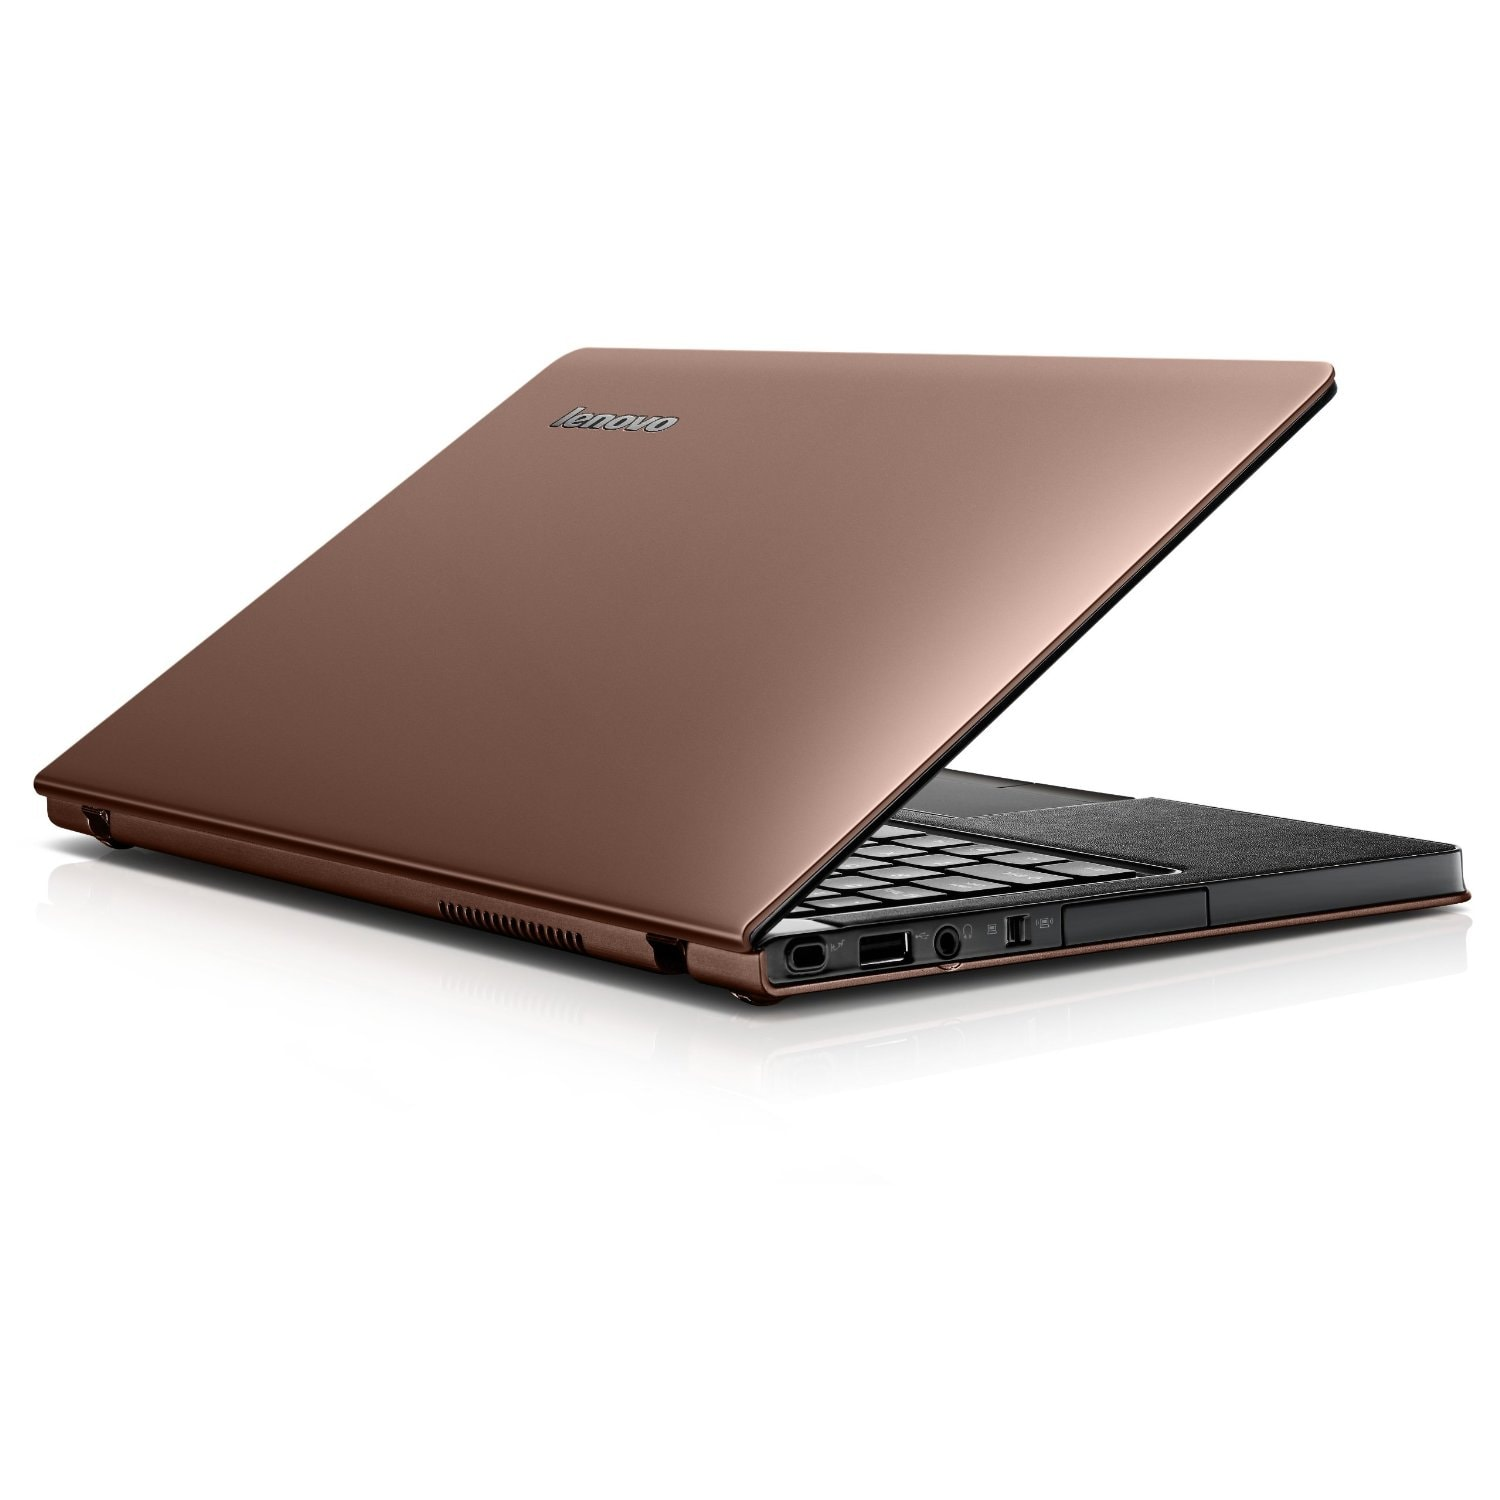 Lenovo IdeaPad U260 1.33GHz 320GB 12.5-inch Netbook